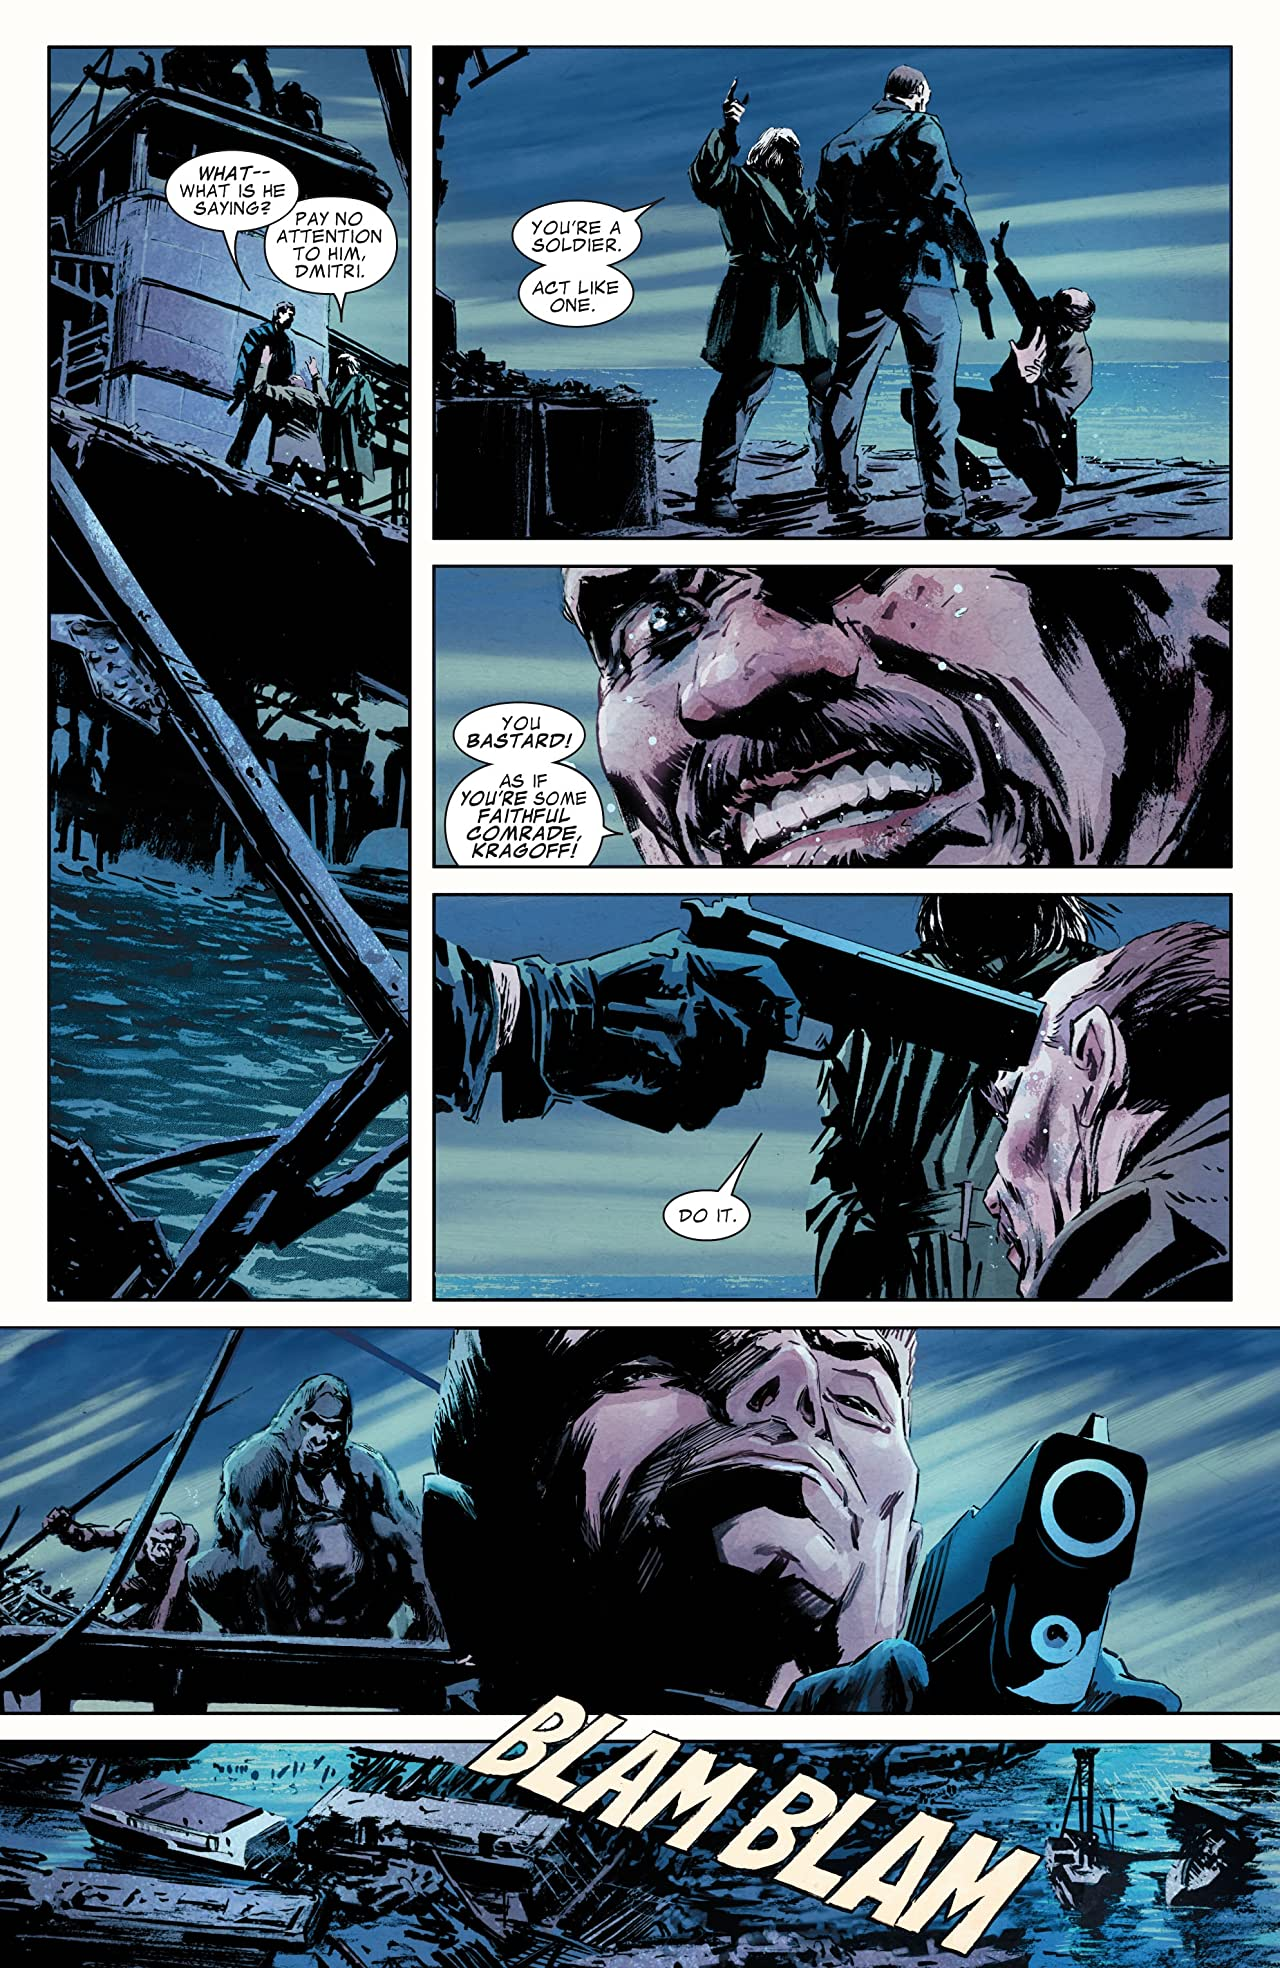 Winter Soldier #3